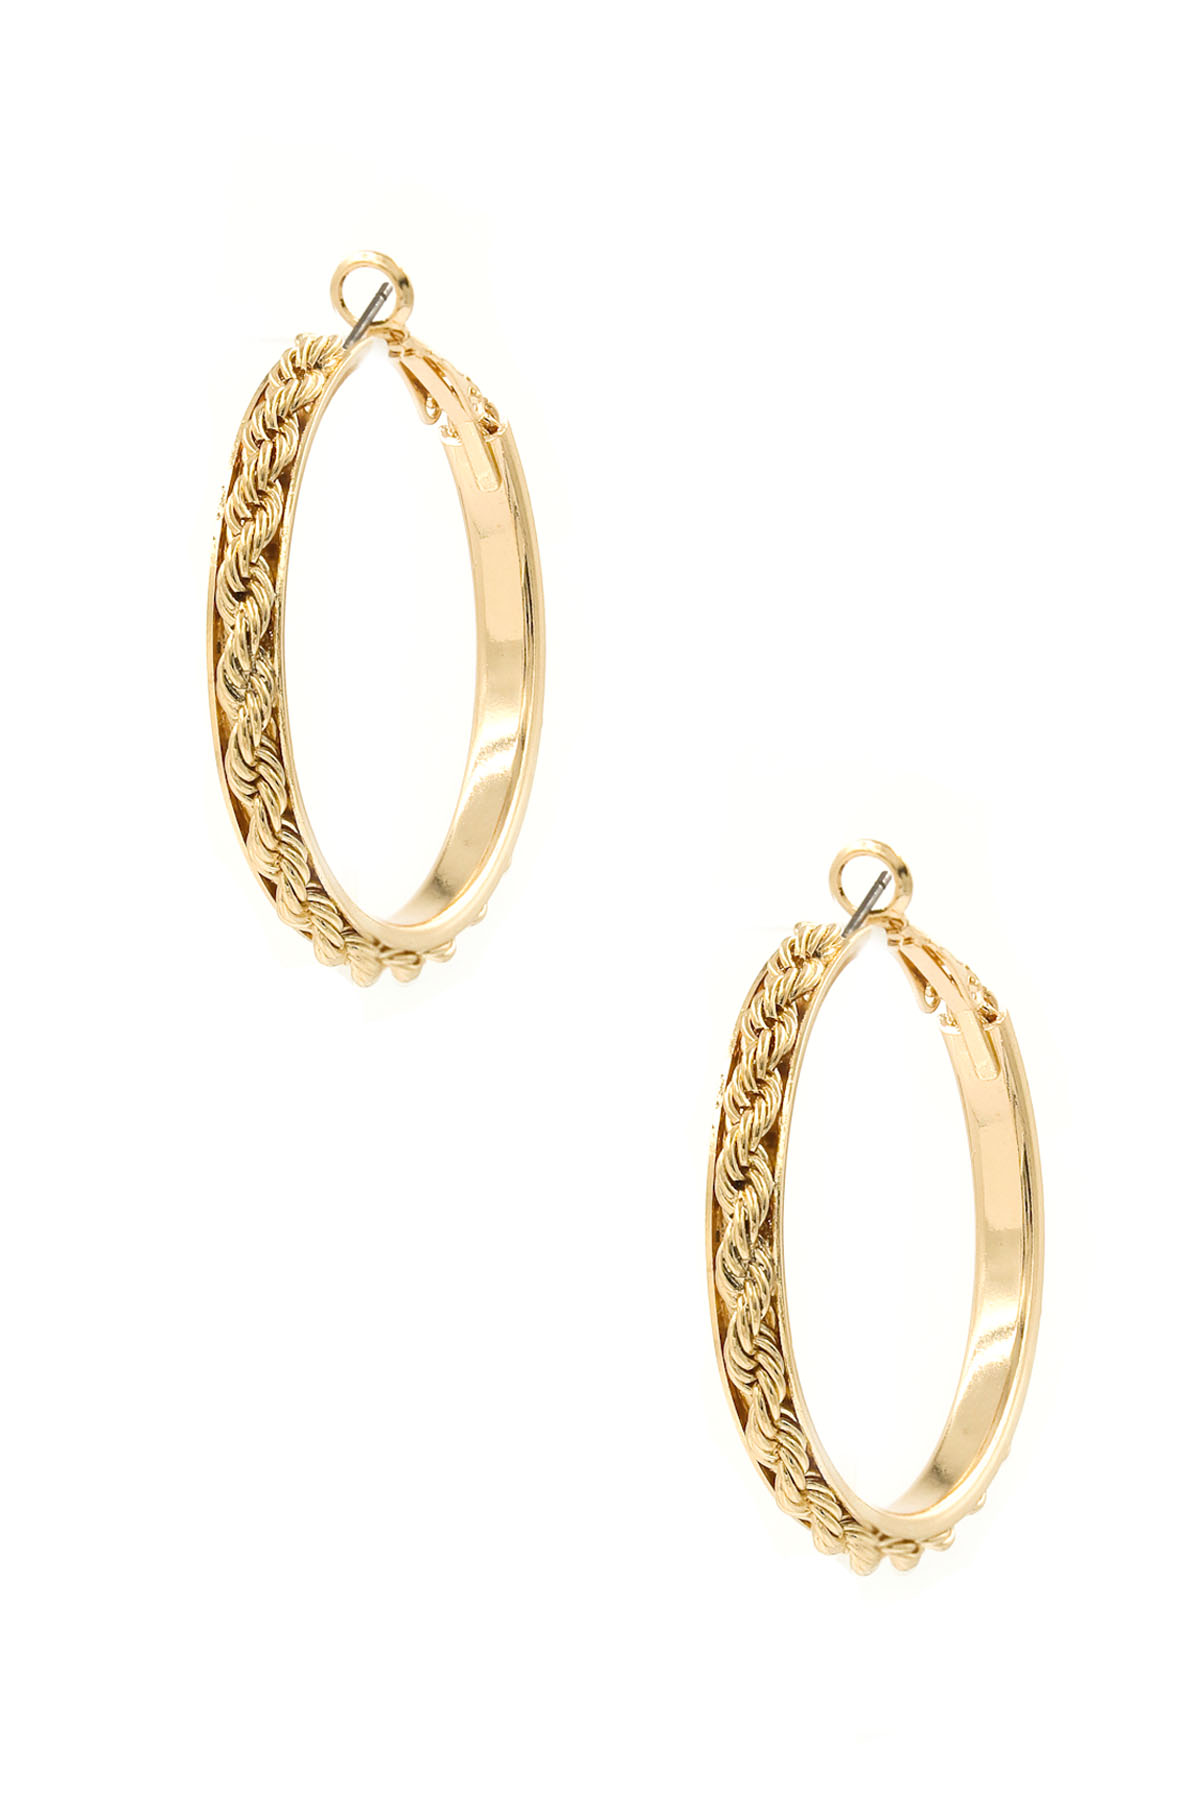 Find great deals on eBay for metal hoop earrings. Shop with confidence.